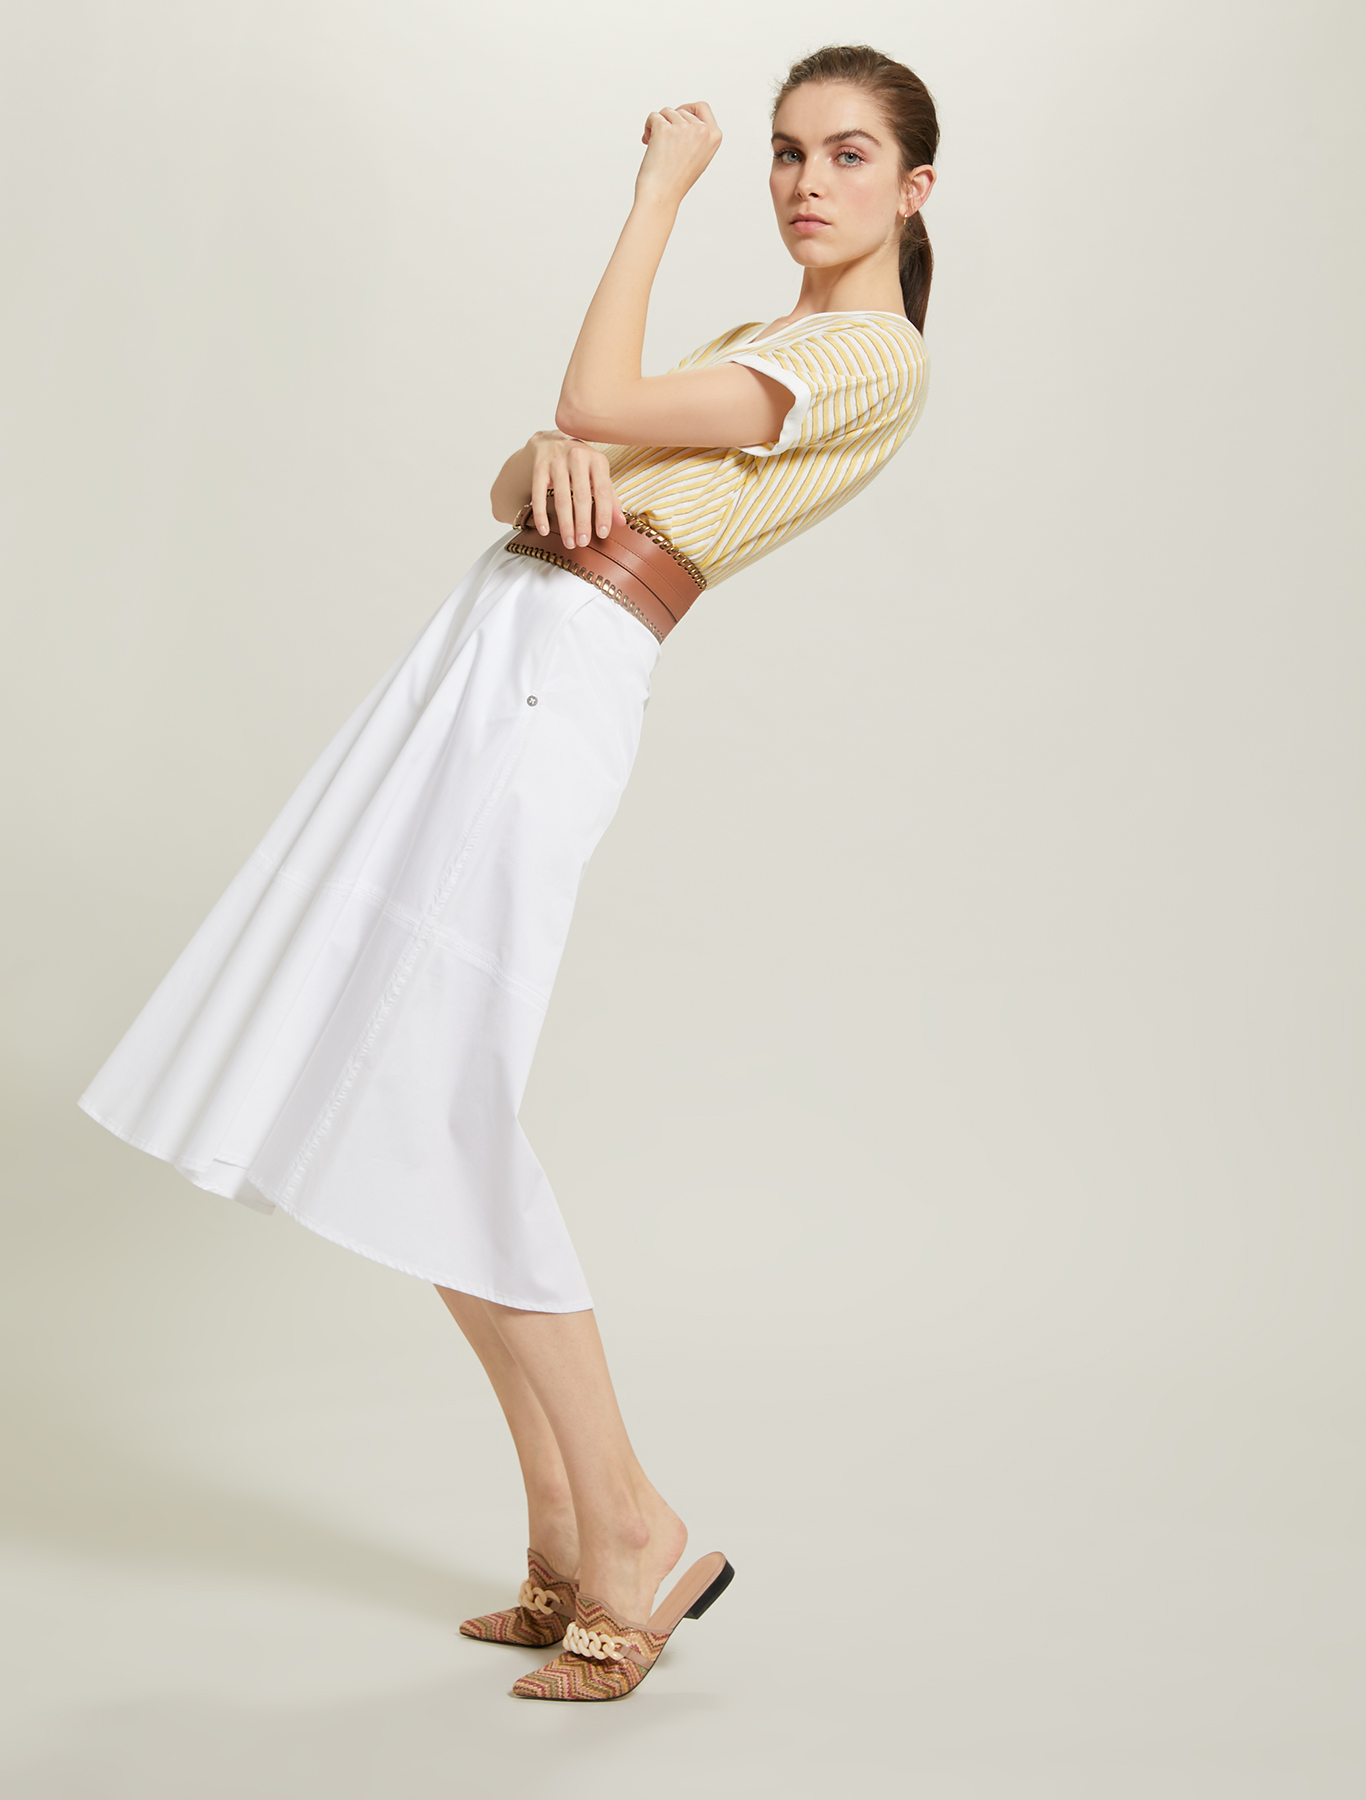 Cotton satin skirt - white - pennyblack